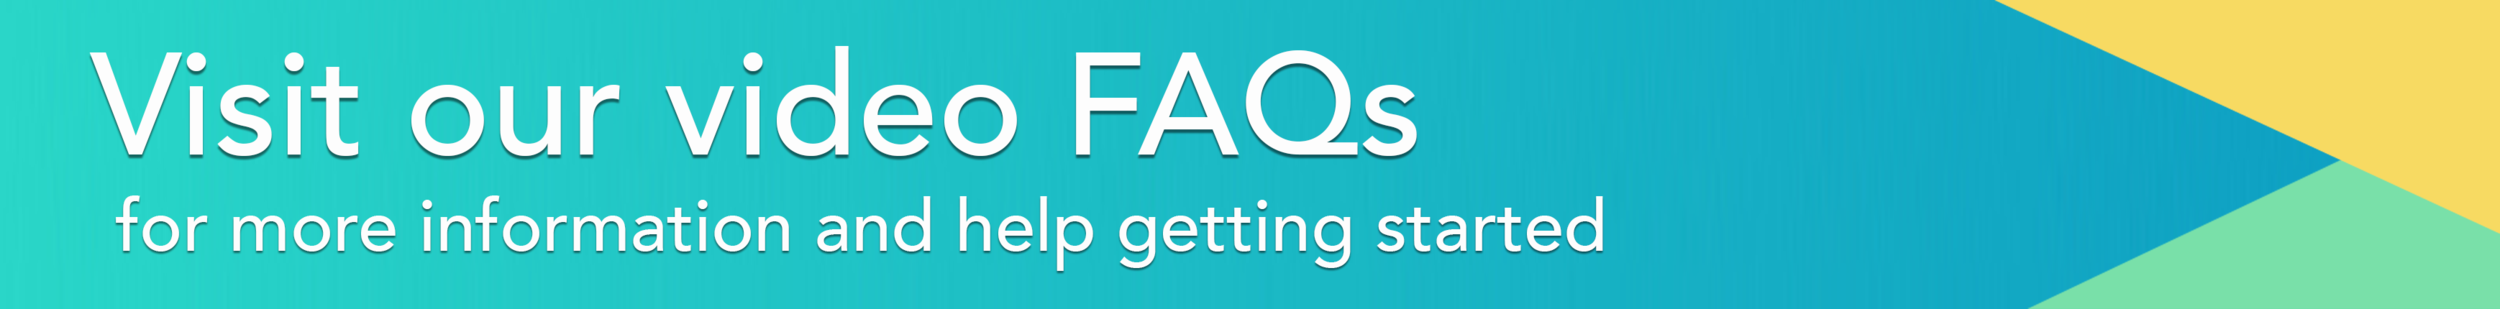 Watch our video FAQs